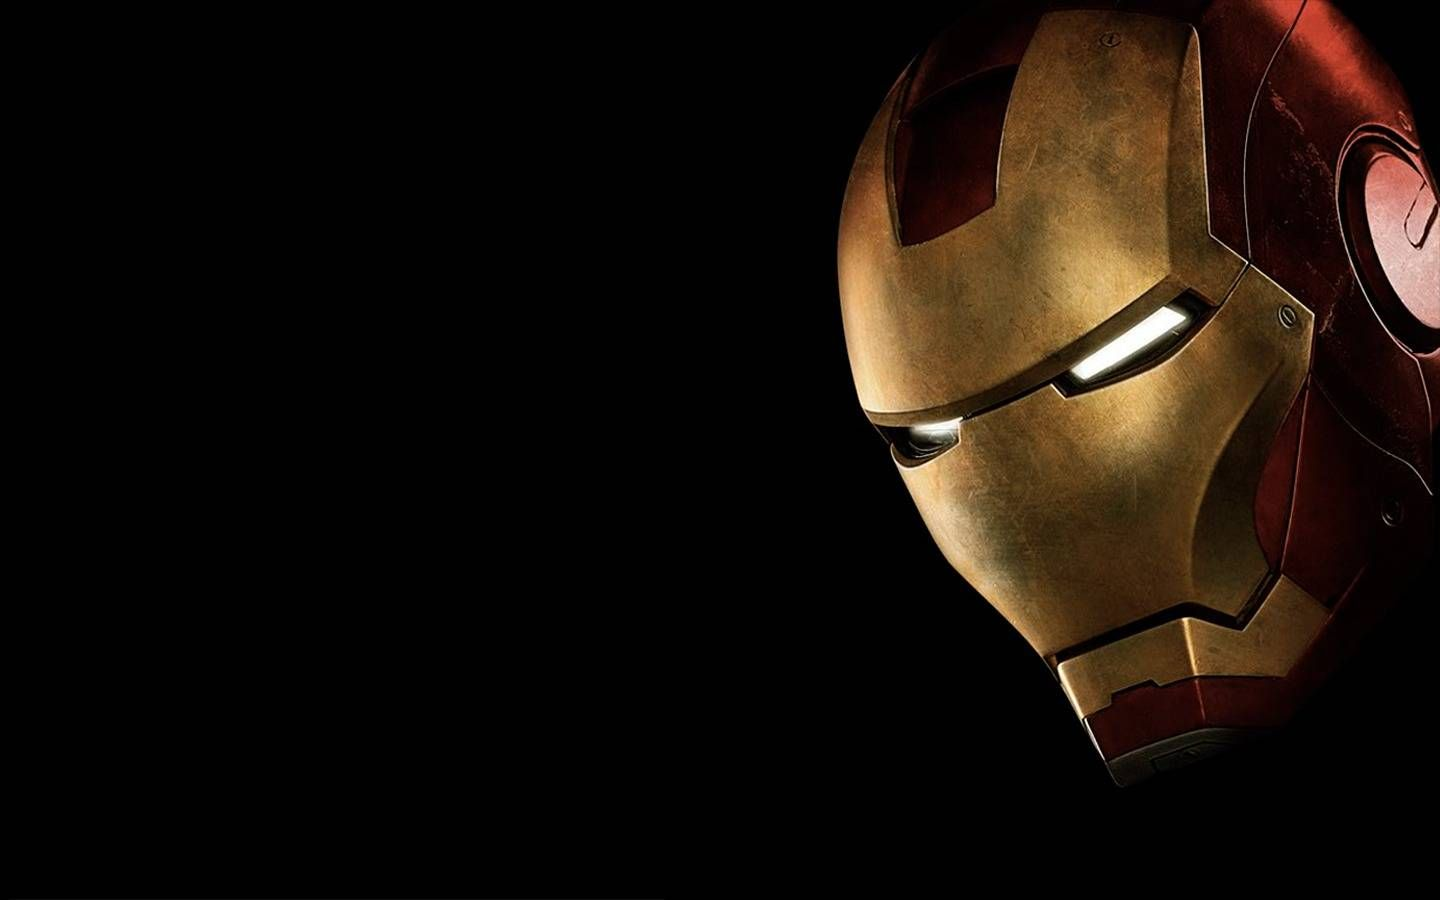 Undefined 3d Iron Man Wallpapers 38 Wallpapers Adorable Wallpapers Iron Man Wallpaper Iron Man Hd Wallpaper Iron Man